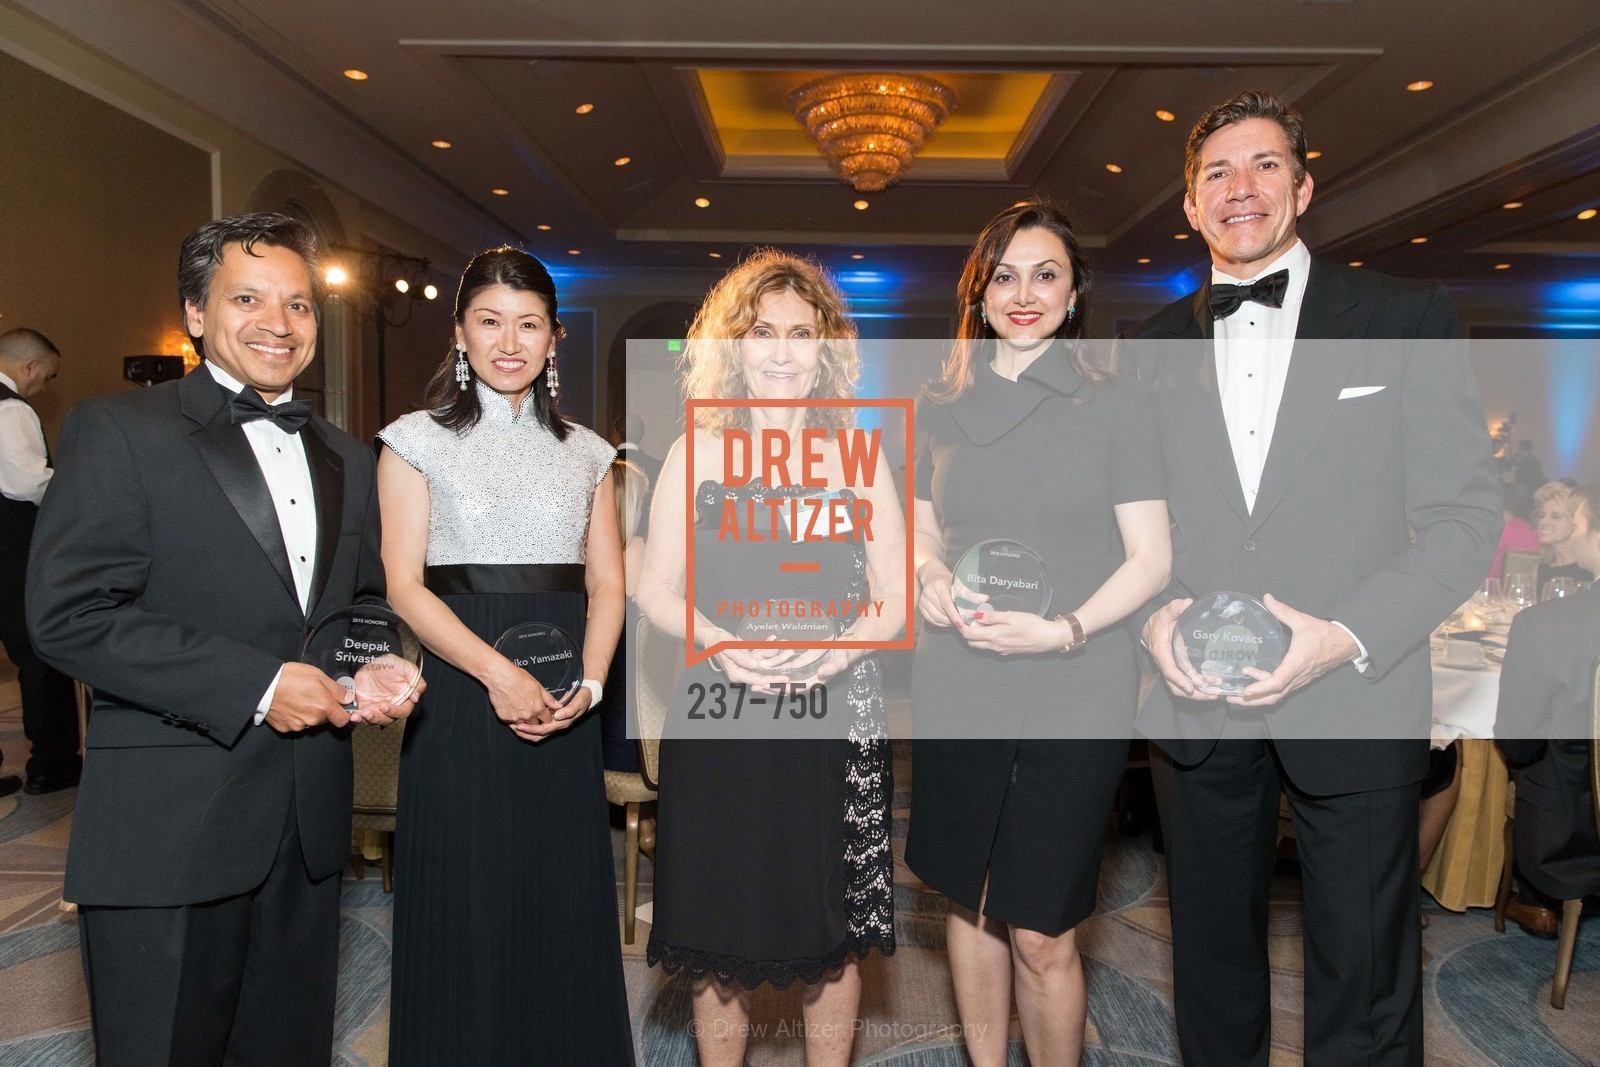 Deepak Srivastava, Akiko Yamazaki, Sharon Chabon, Bita Daryabari, Gary Kovacs, WORLD AFFAIRS COUNCIL Awards Dinner, US, May 26th, 2015,Drew Altizer, Drew Altizer Photography, full-service agency, private events, San Francisco photographer, photographer california